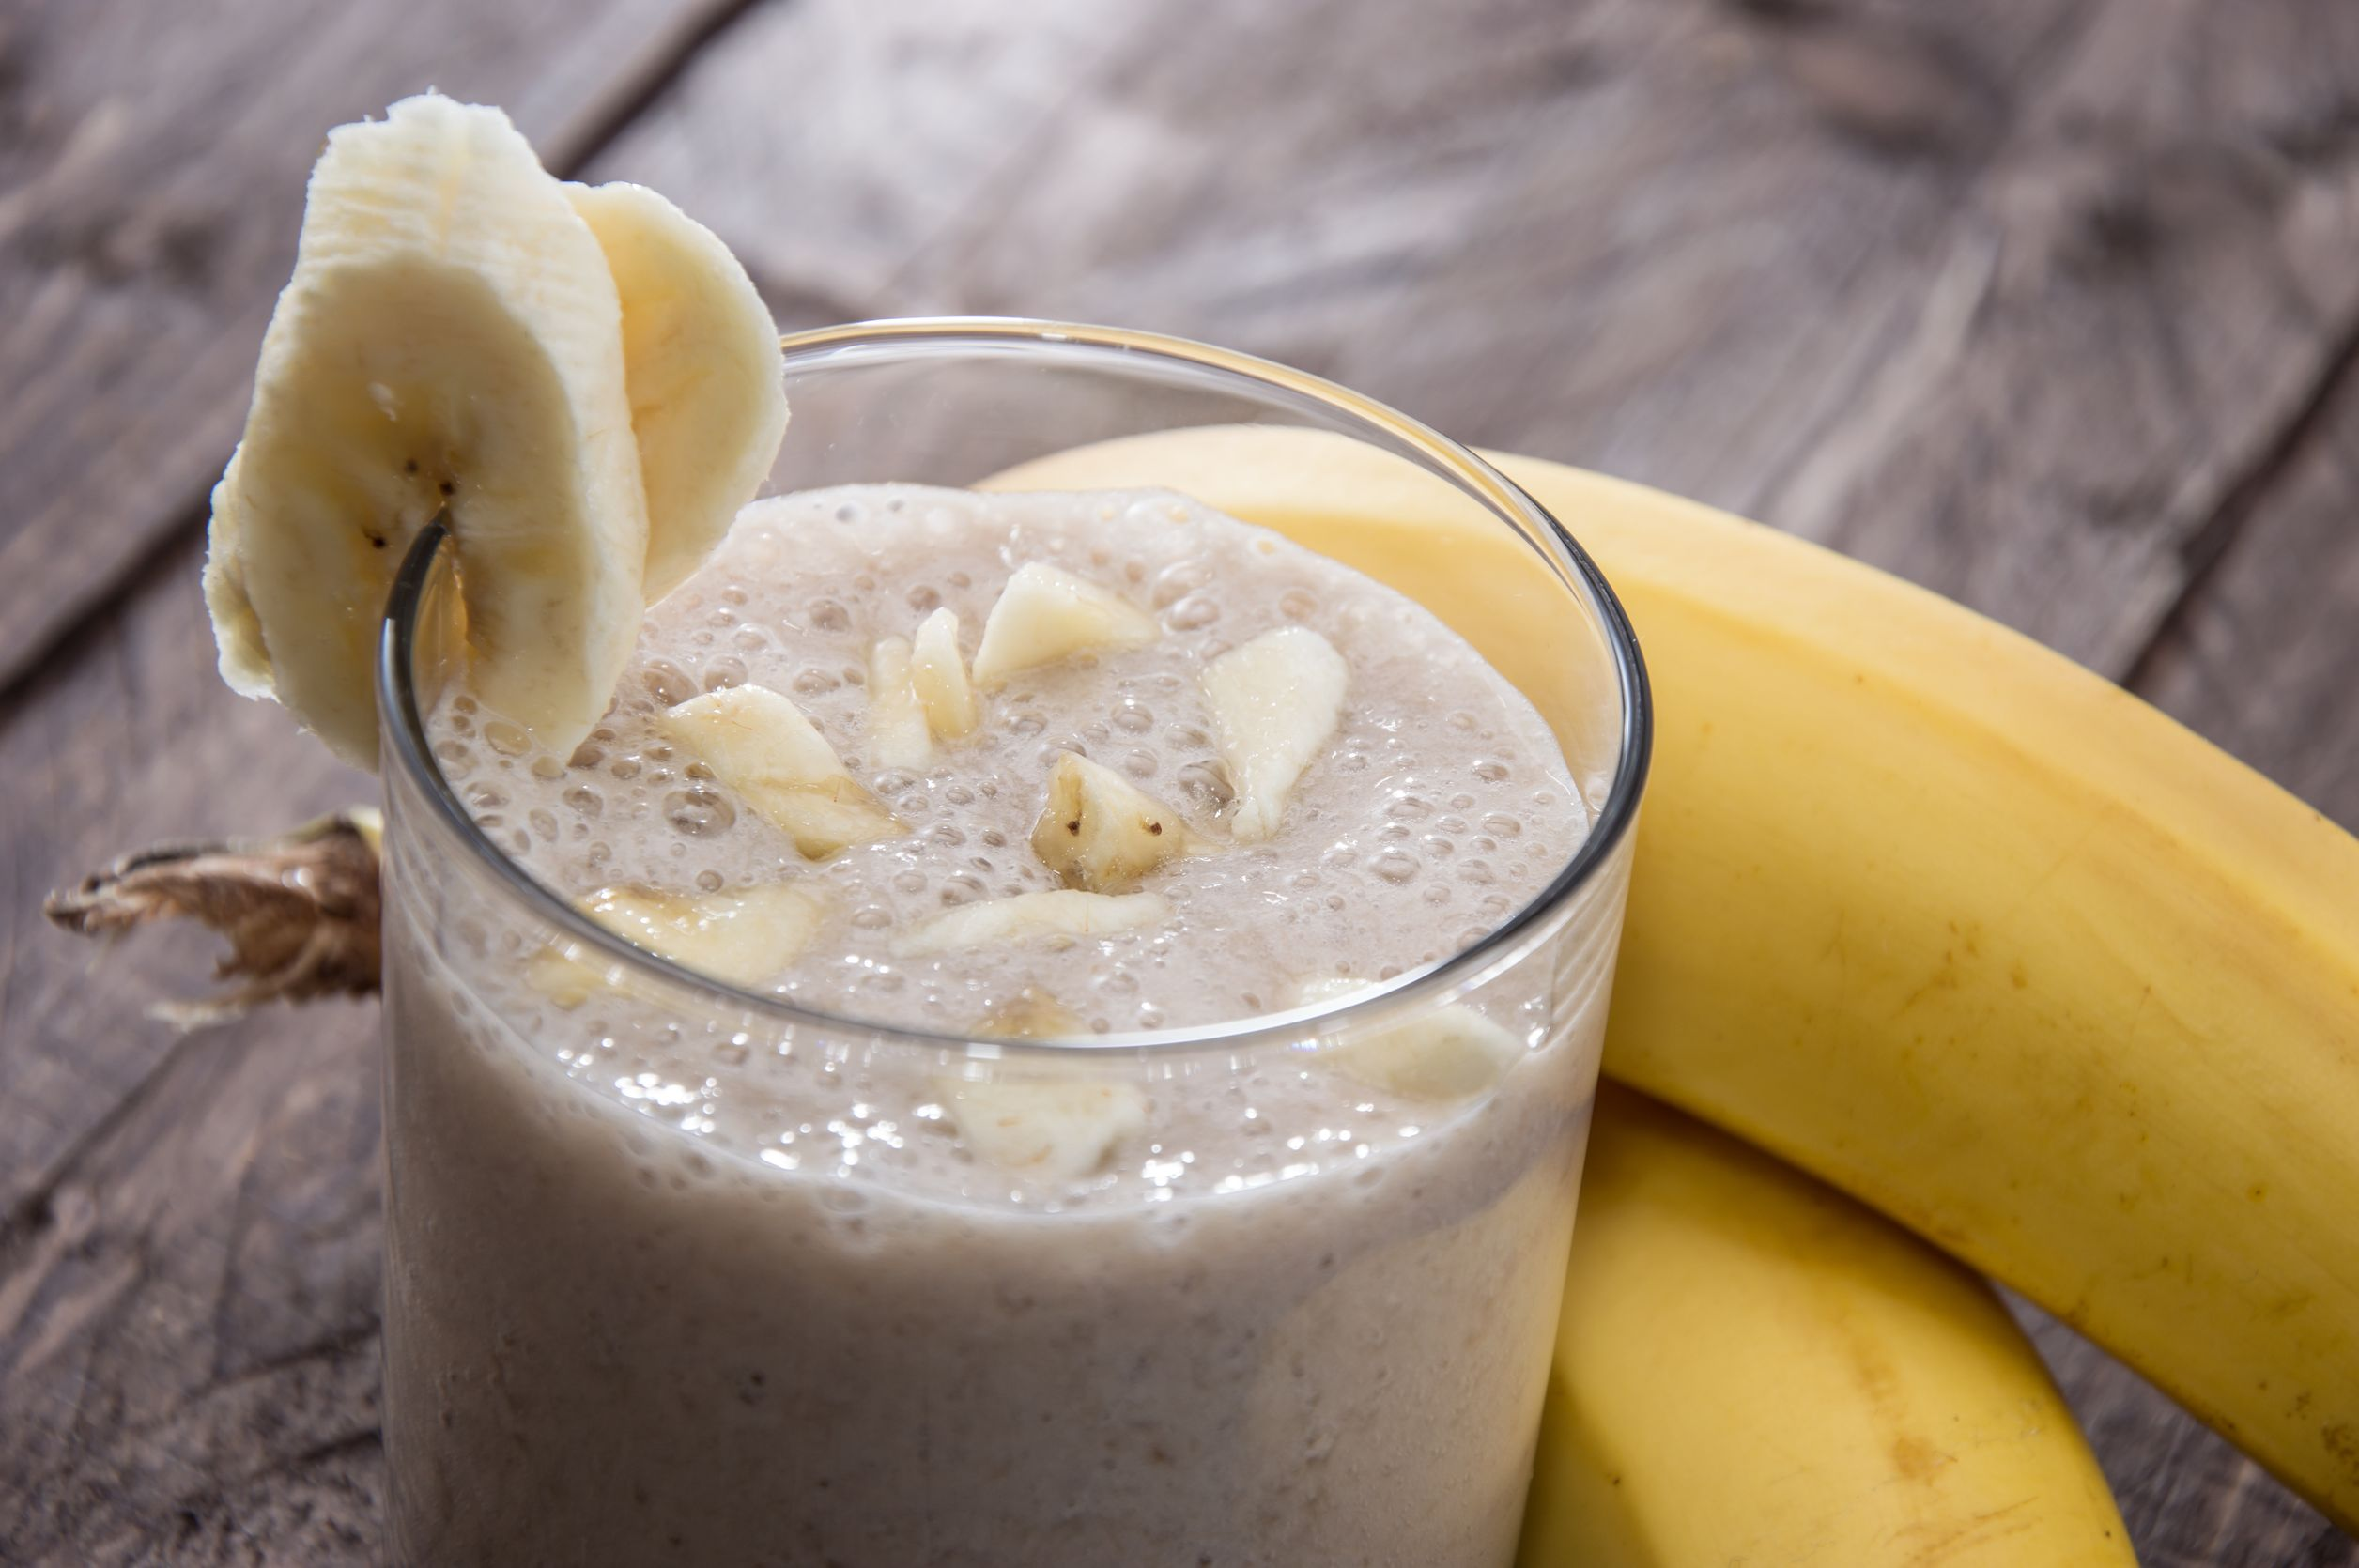 banana-milkshake-on-wooden-background